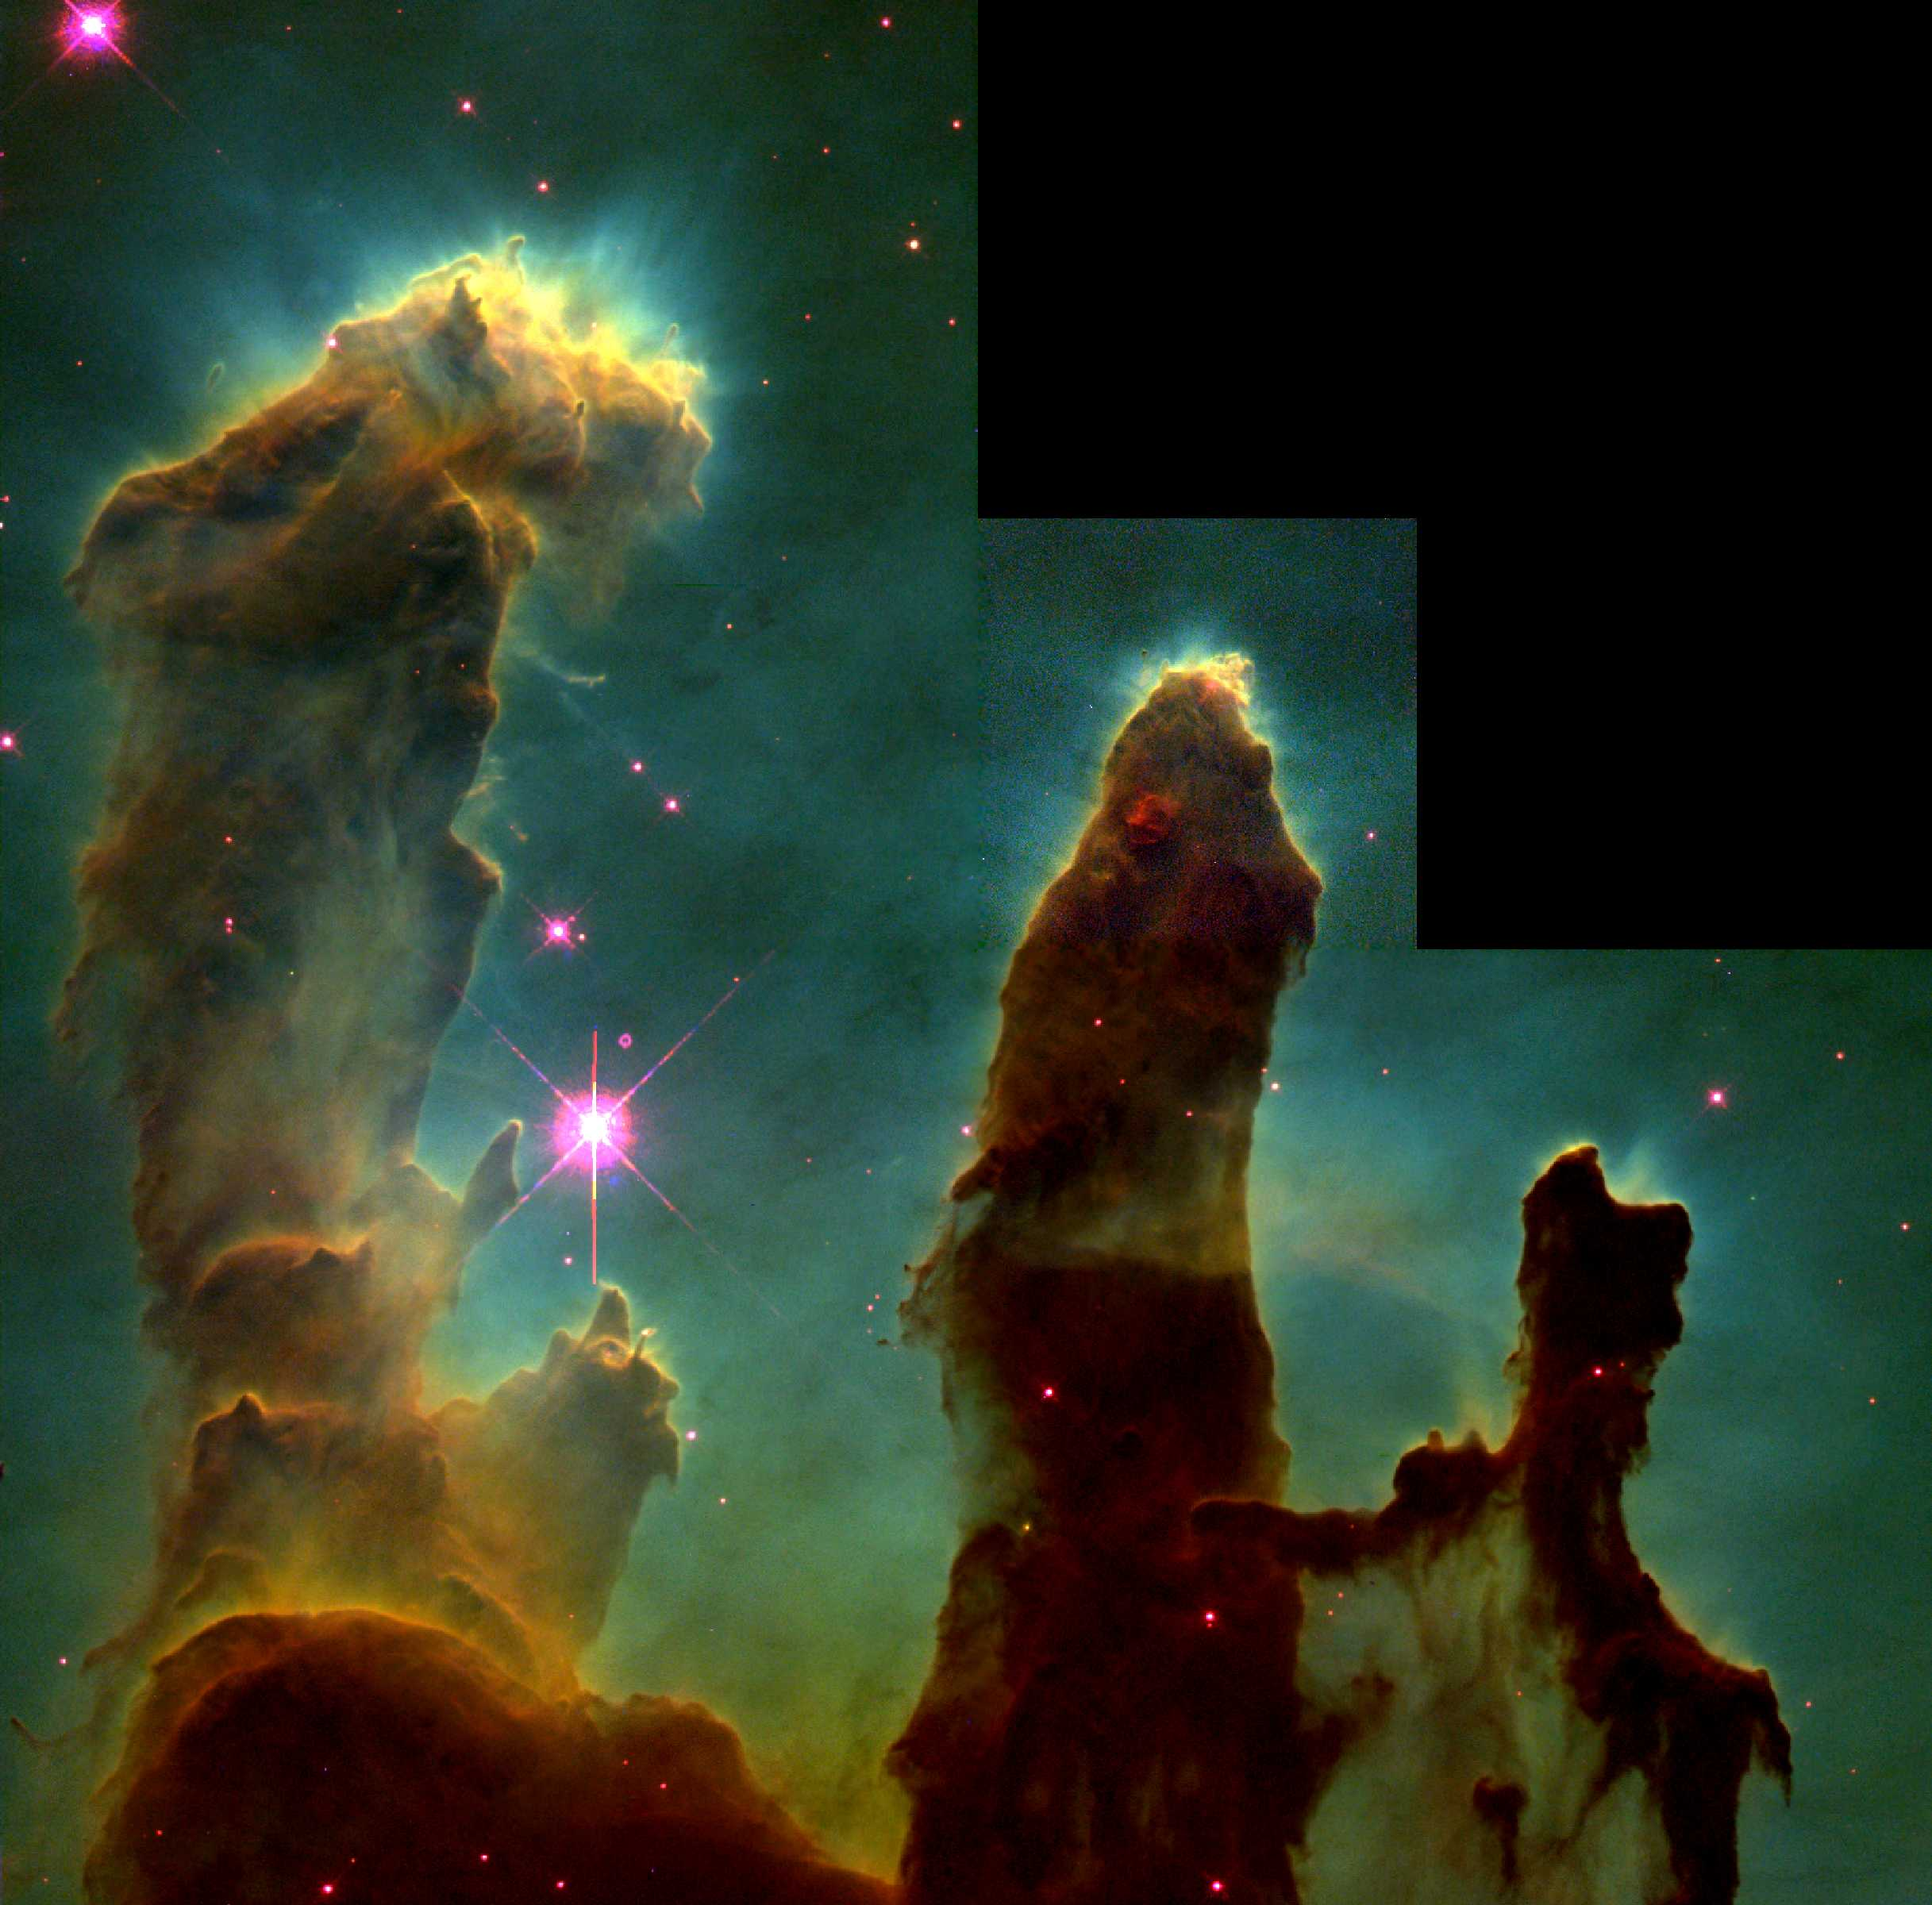 http://upload.wikimedia.org/wikipedia/commons/b/b2/Eagle_nebula_pillars.jpg